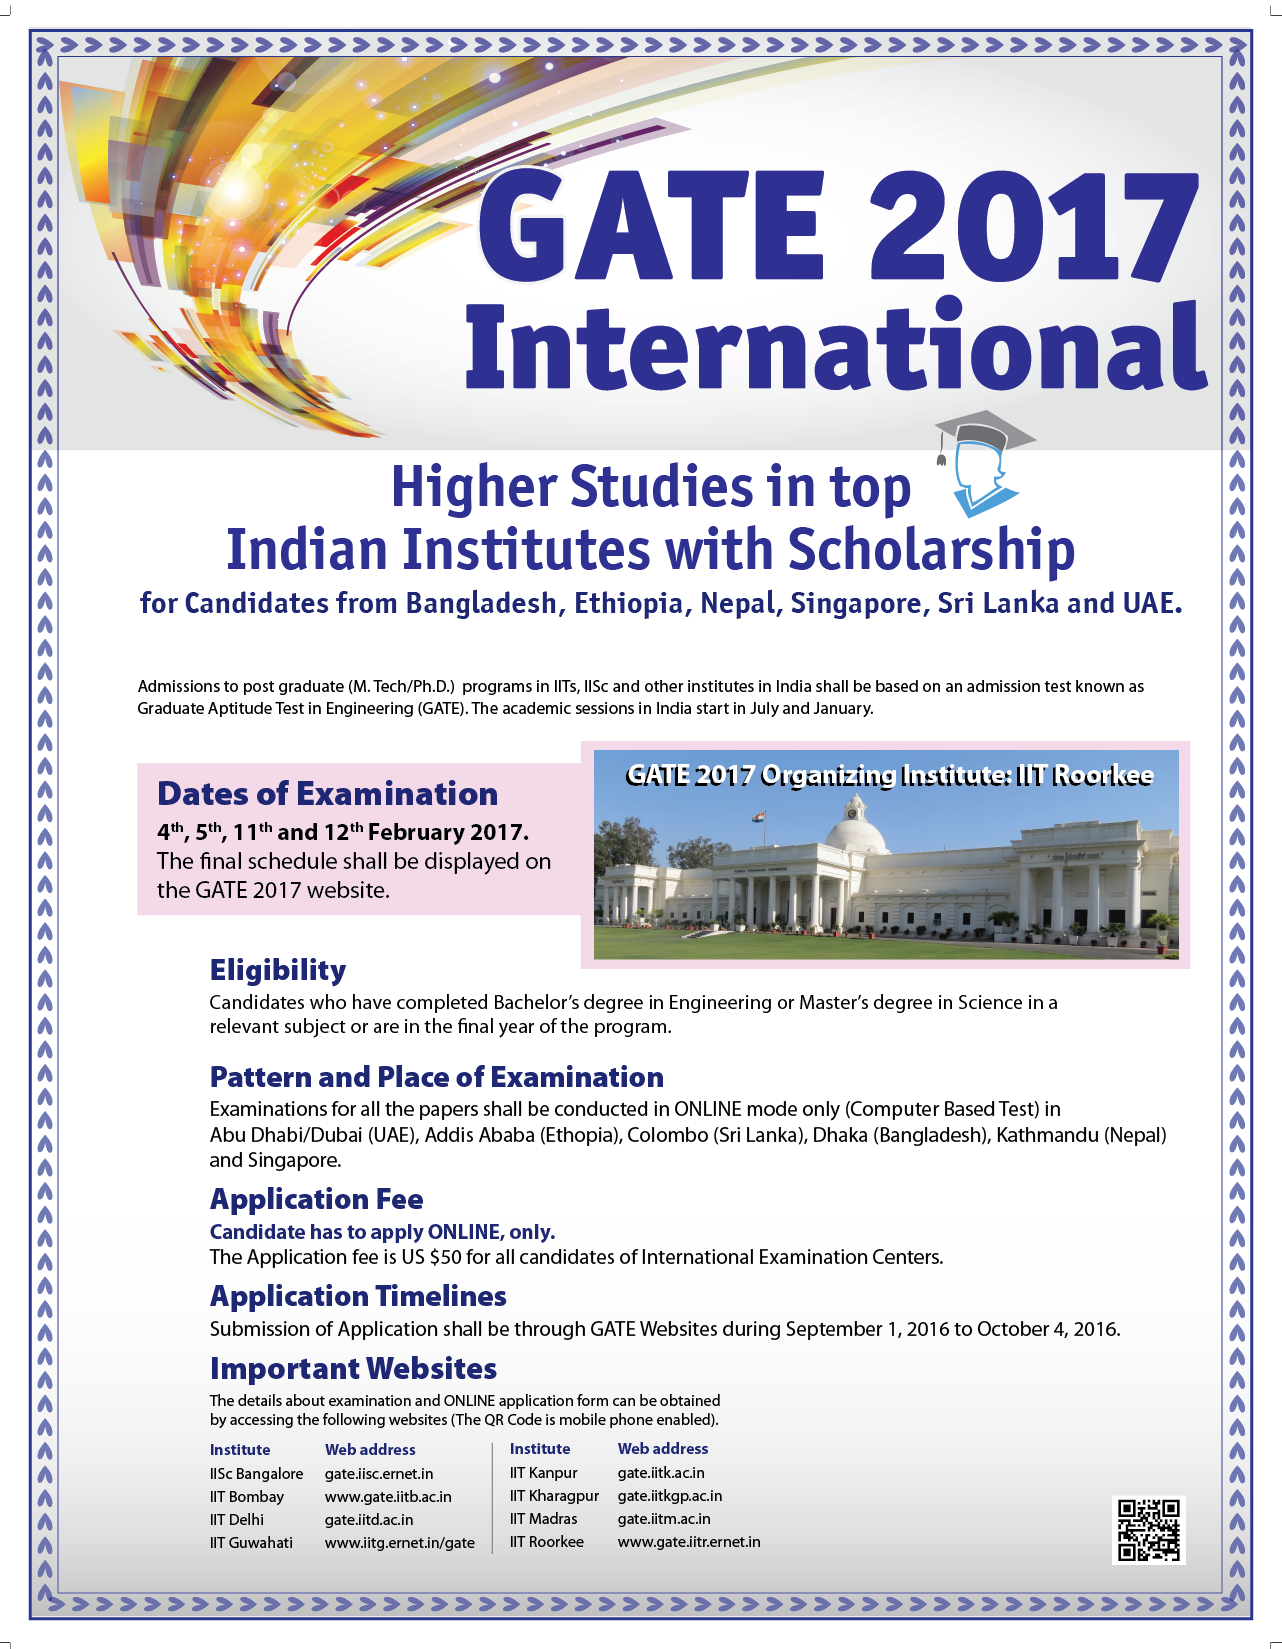 GATE-2017-Poster-International-Image